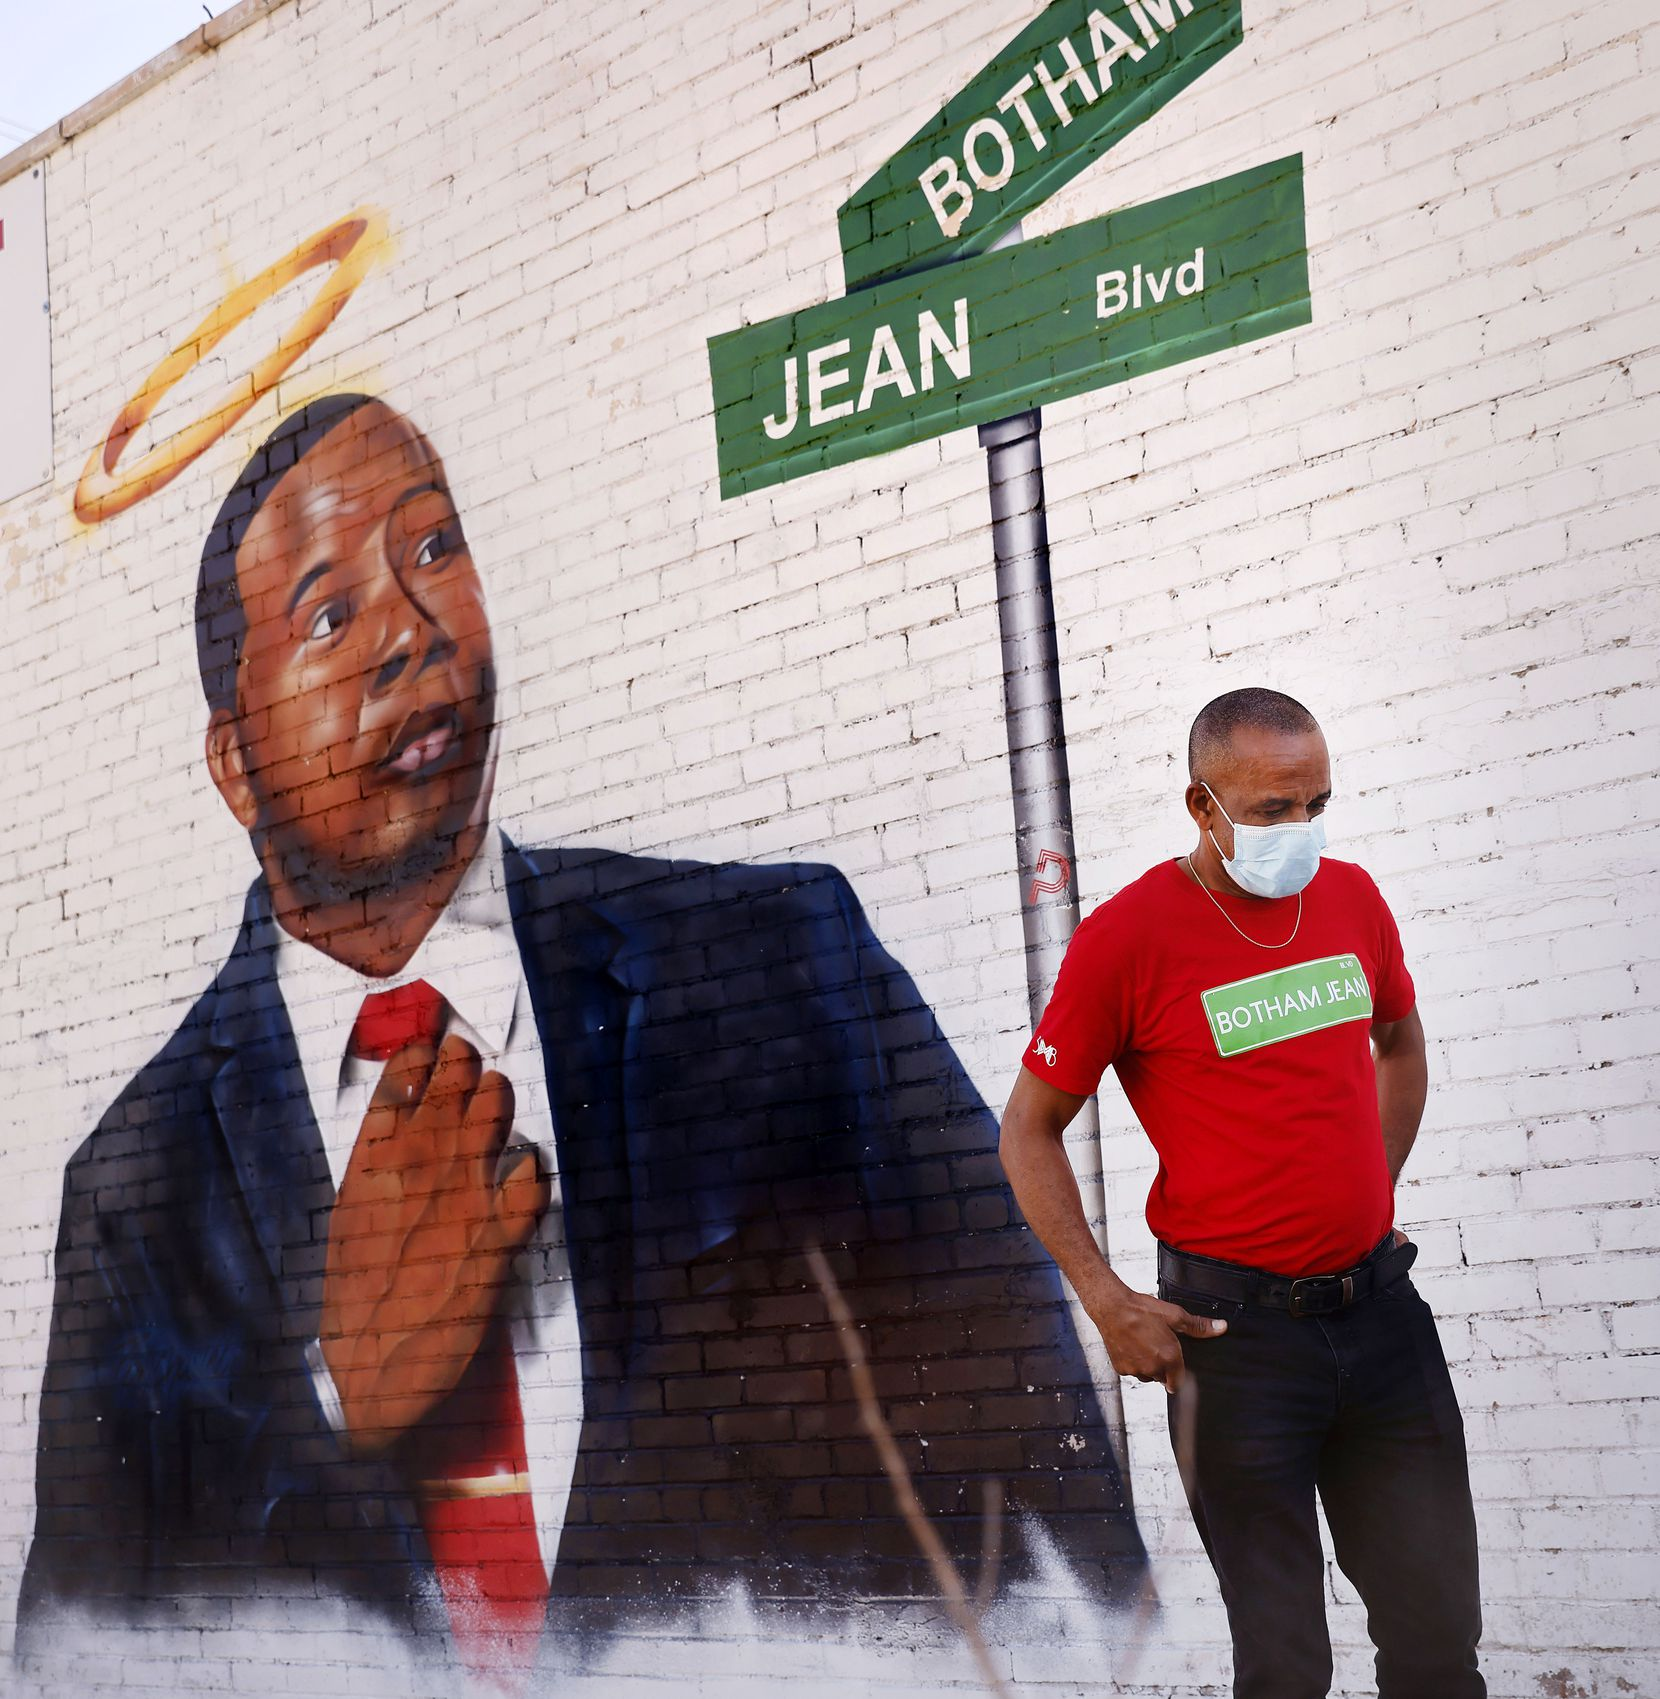 Bertrum Jean takes a moment for himself as he views a mural of his slain son, Botham Jean, on South Lamar Street. A part of the road will be renamed Botham Jean Boulevard on Saturday, March 27, 2021.